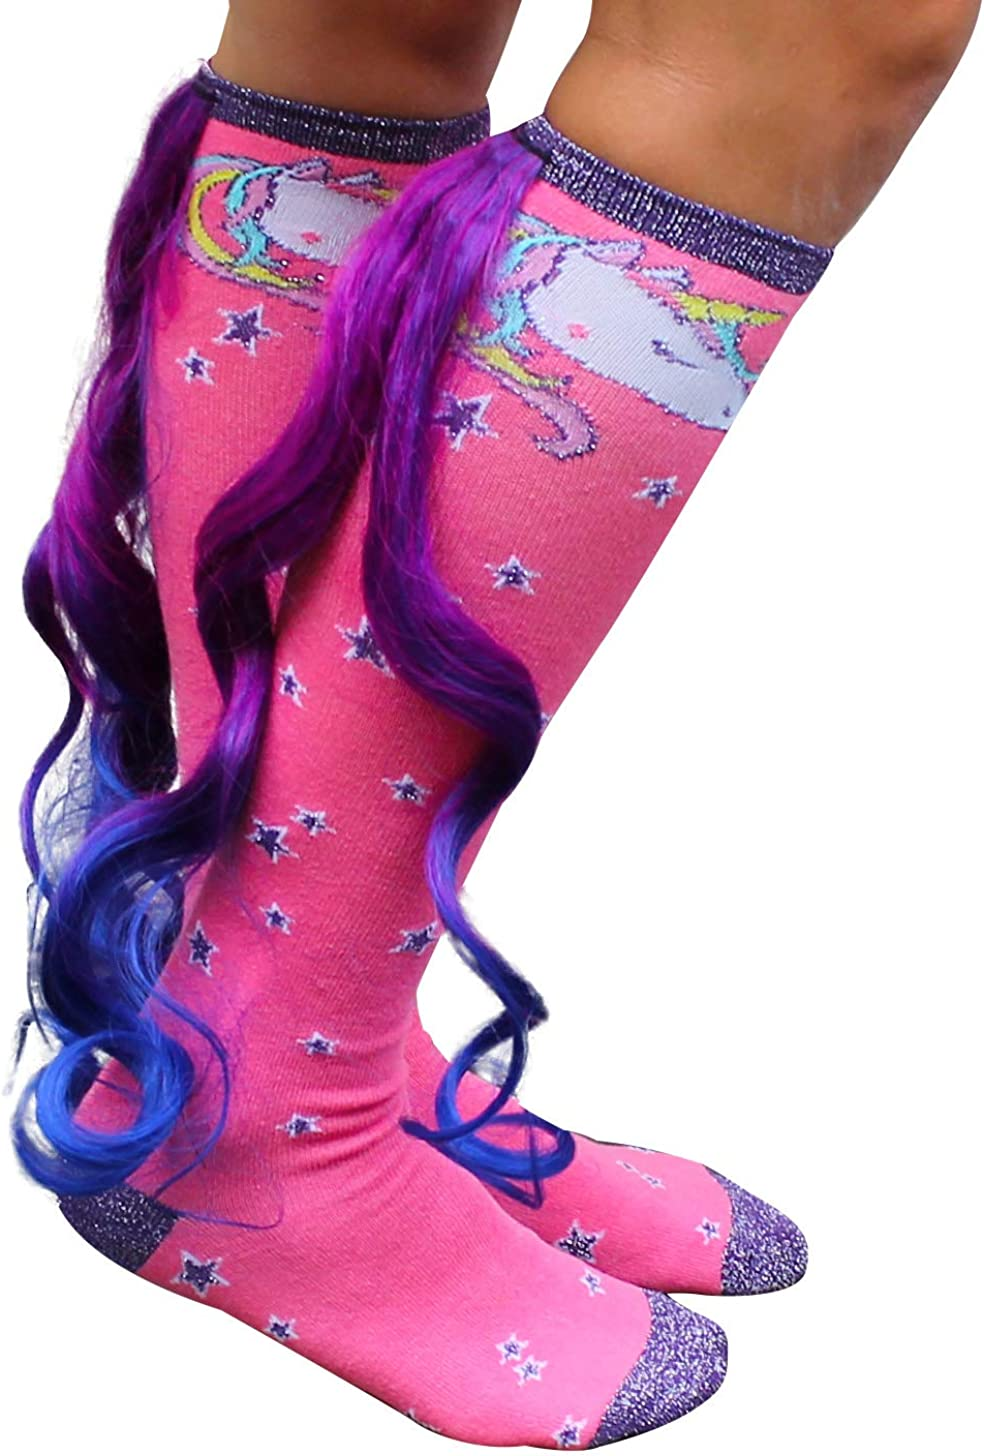 Gears Out Magical Unicorn Socks with Colorful Tail - Pink and Purple - One-size